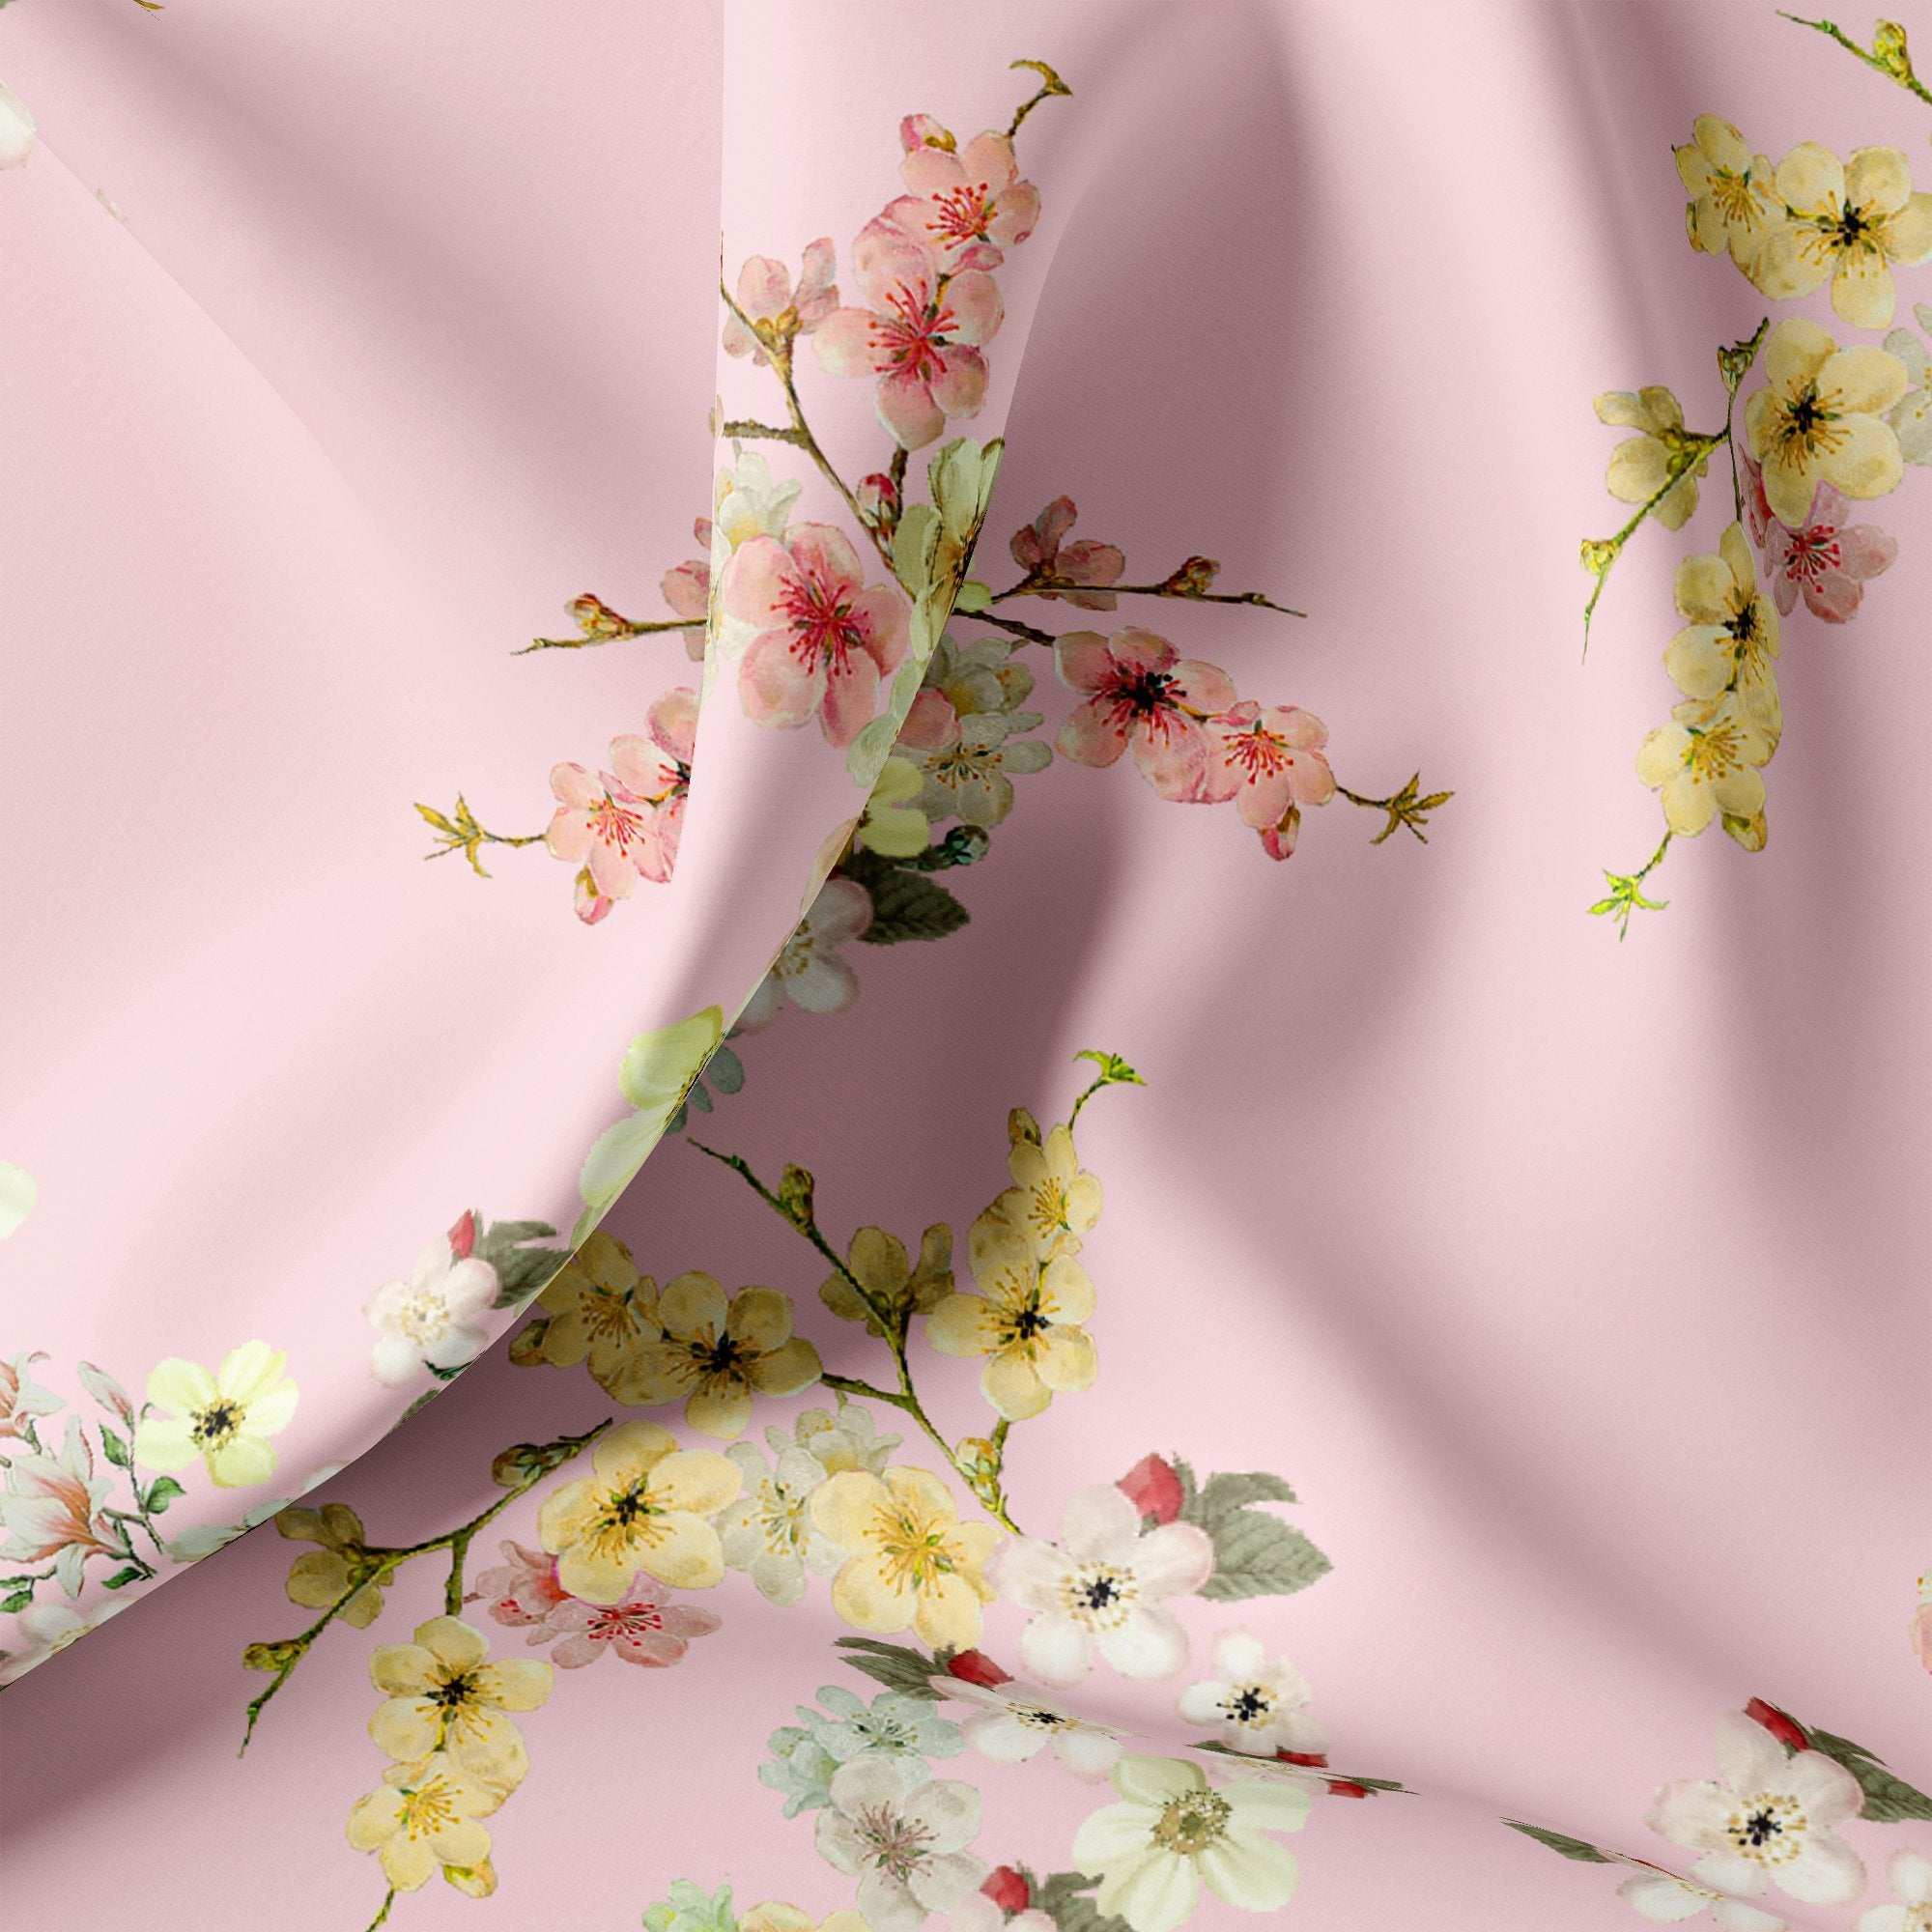 Beautiful Floral Vine Pink Base Digital Printed Fabric - FAB VOGUE Studio. Shop Fabric @ www.fabvoguestudio.com